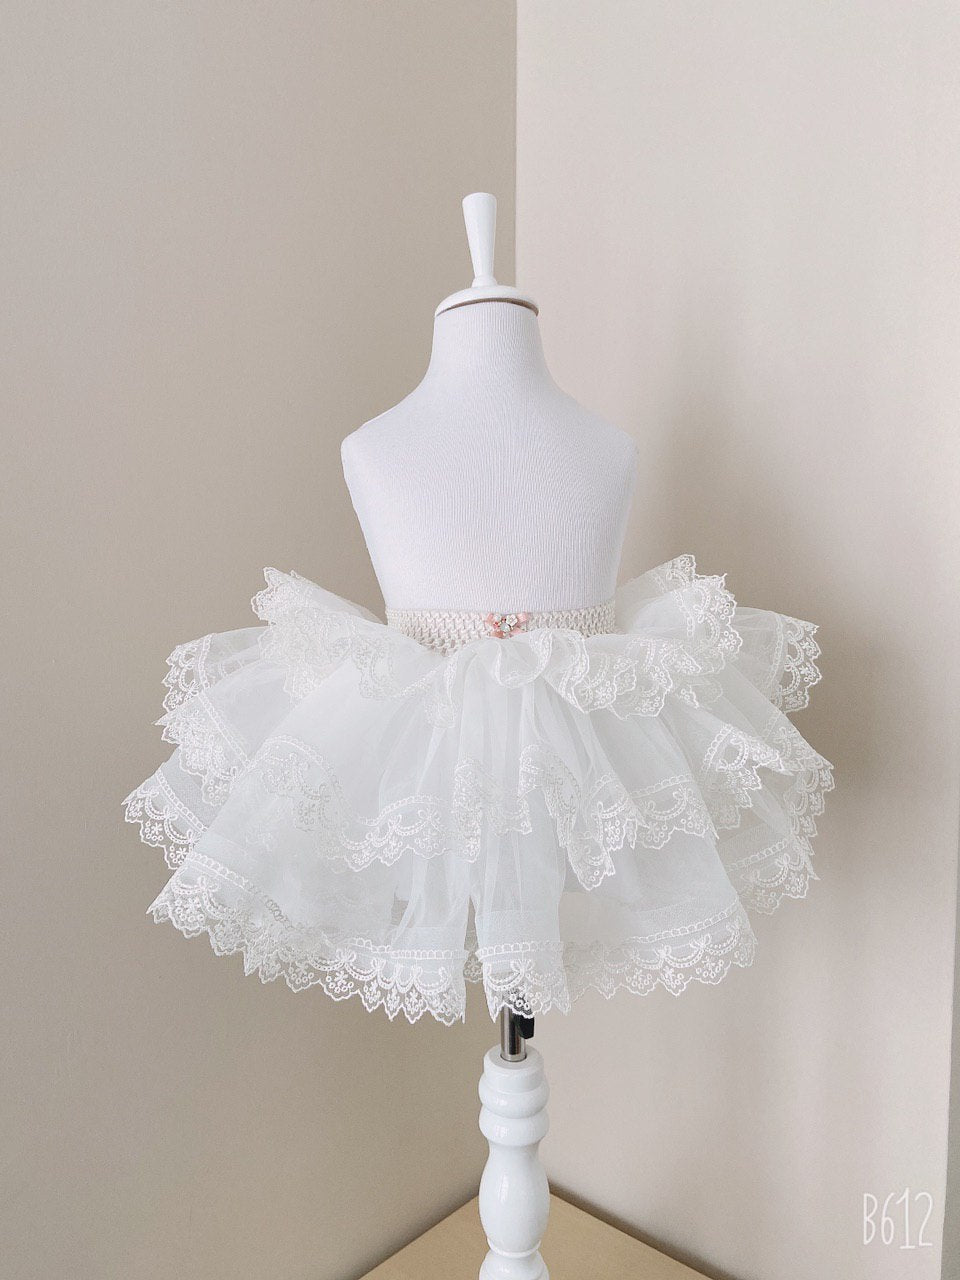 Petticoat with ruffled lace